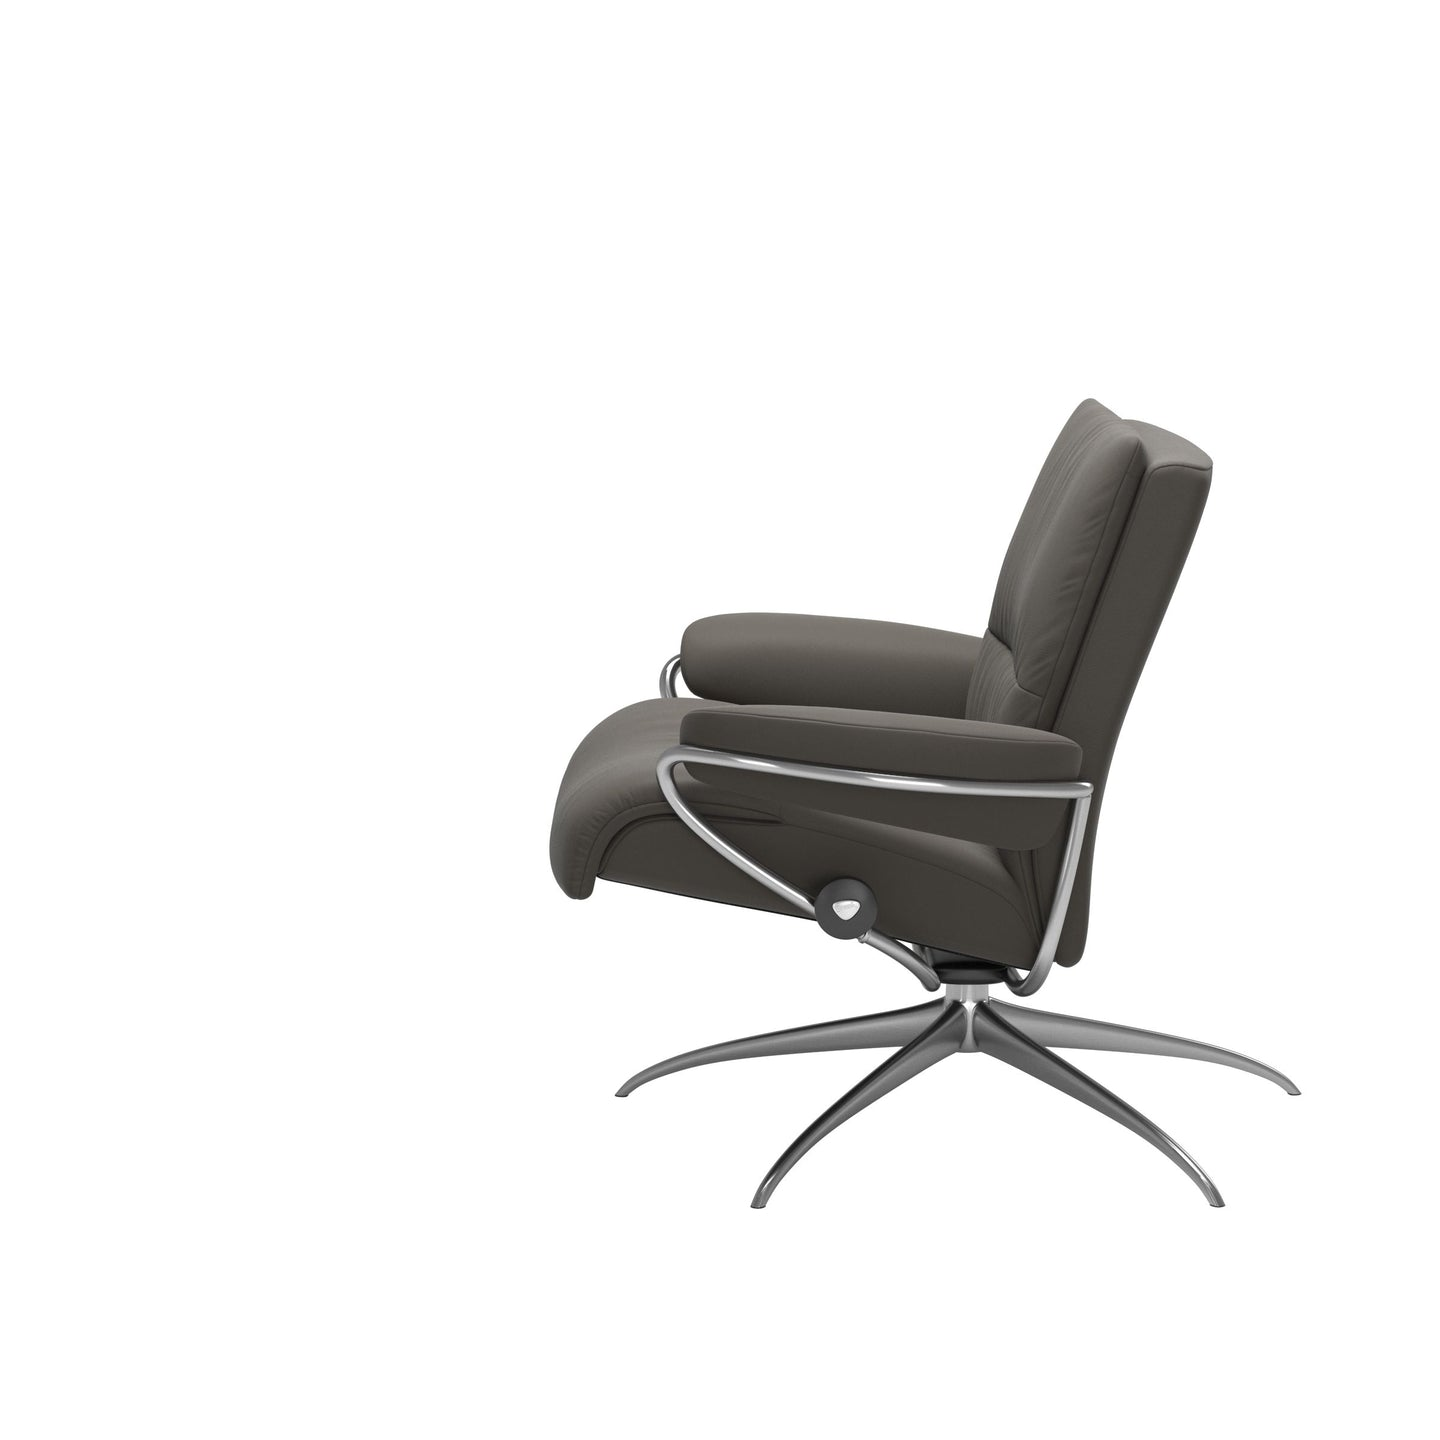 Stressless® Tokyo chair Low back with standard Base